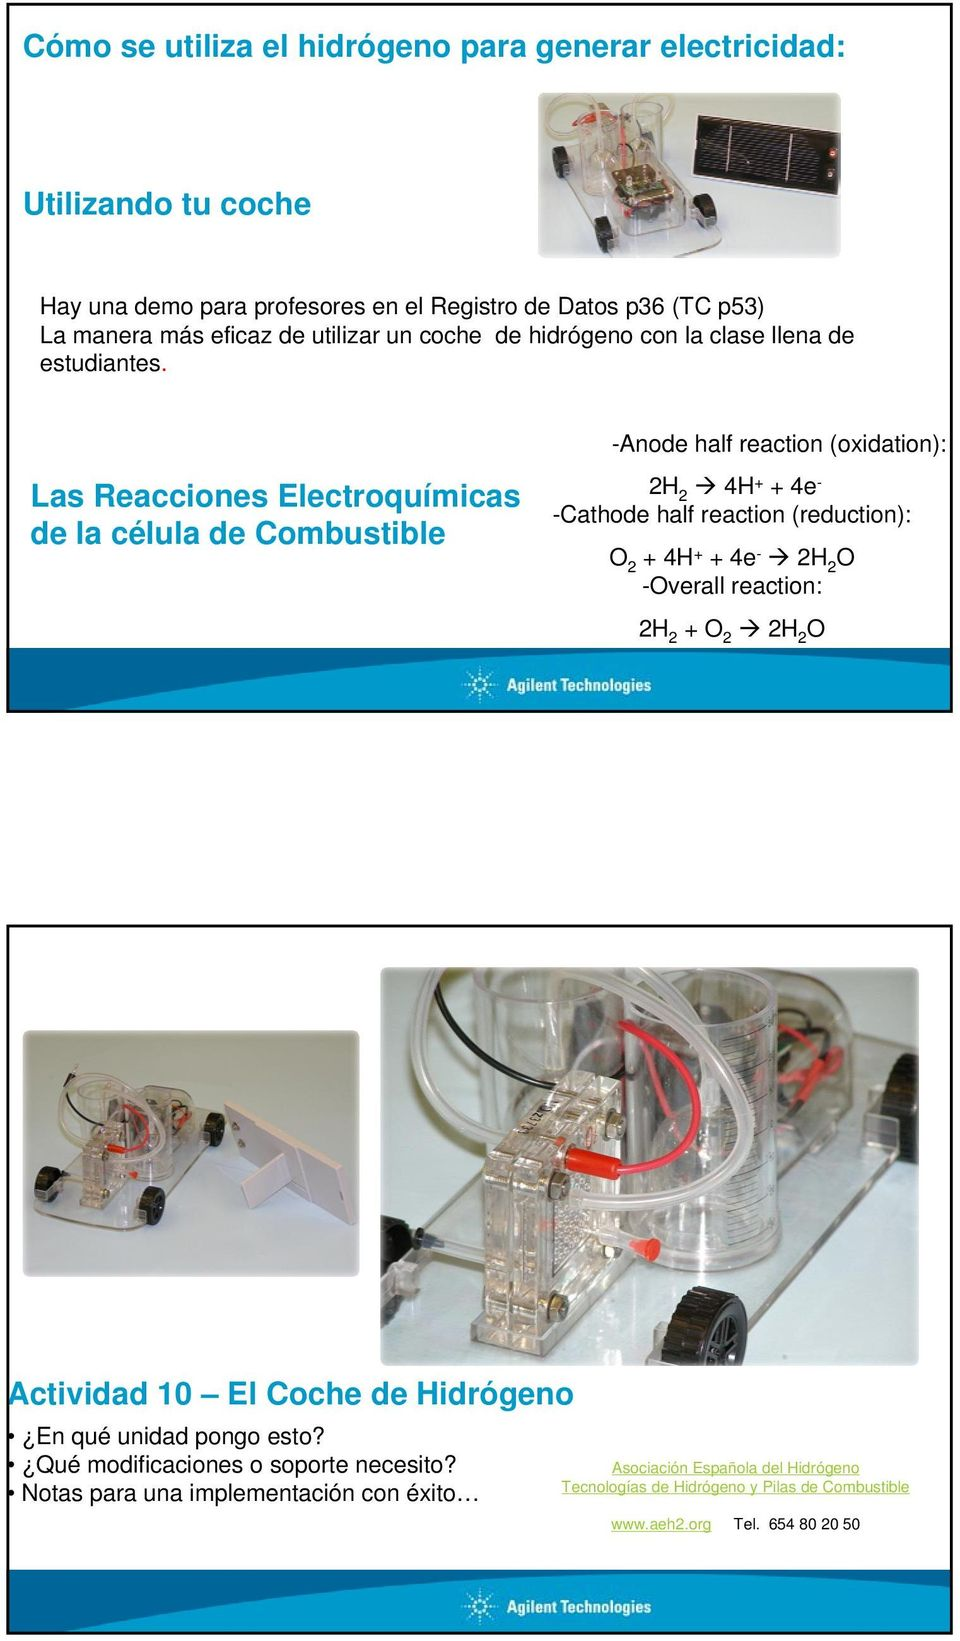 -Anode half reaction (oxidation): Las Reacciones Electroquímicas de la célula de Combustible 2H2 Æ 4H+ + 4e-Cathode half reaction (reduction): O2 + 4H+ + 4e- Æ 2H2O